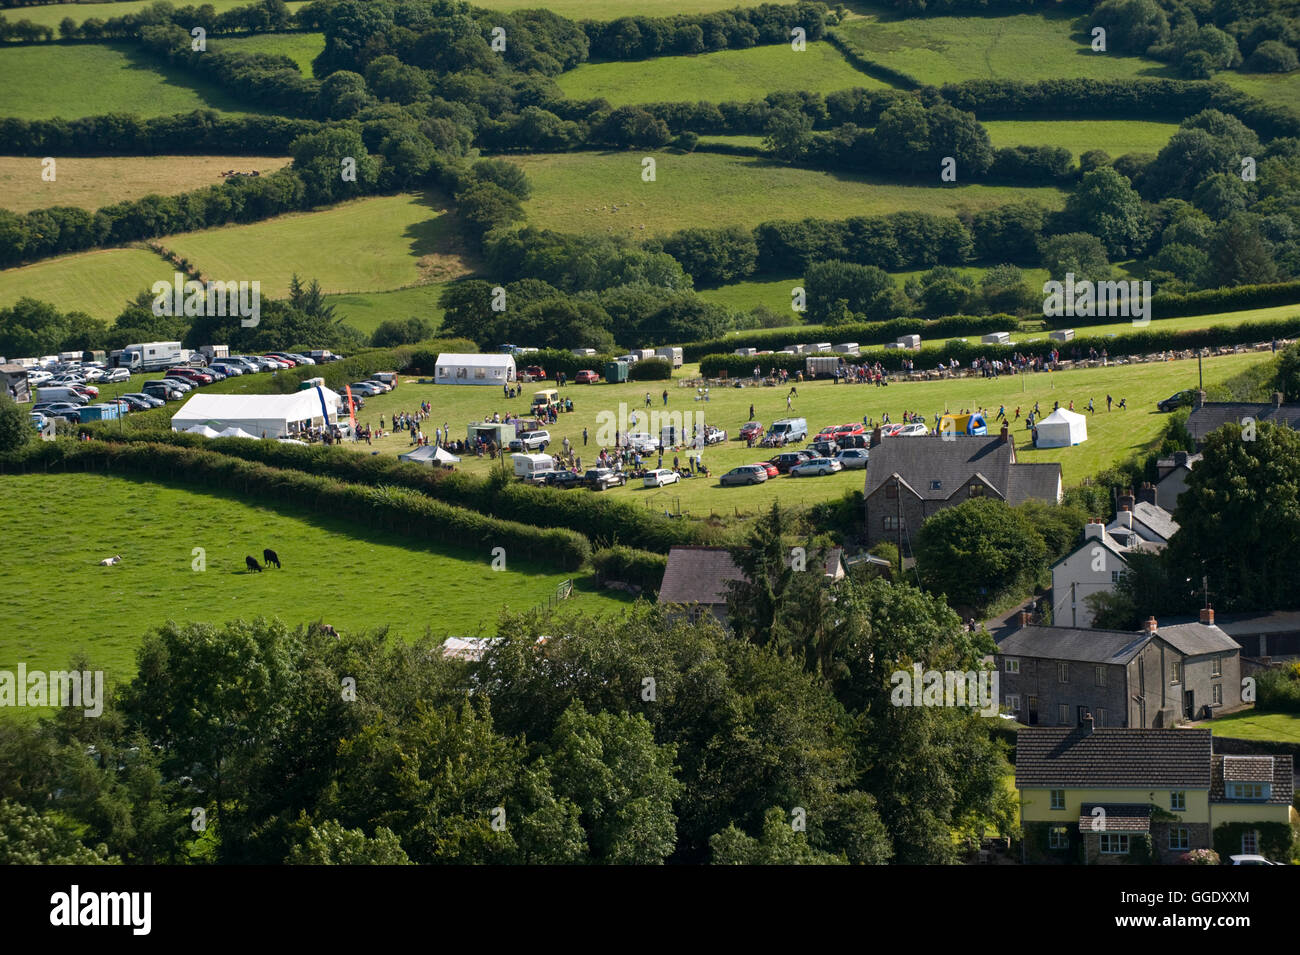 View over Gwenddwr Show and village, Gwenddwr, near Builth Wells, Powys, Wales, UK Stock Photo